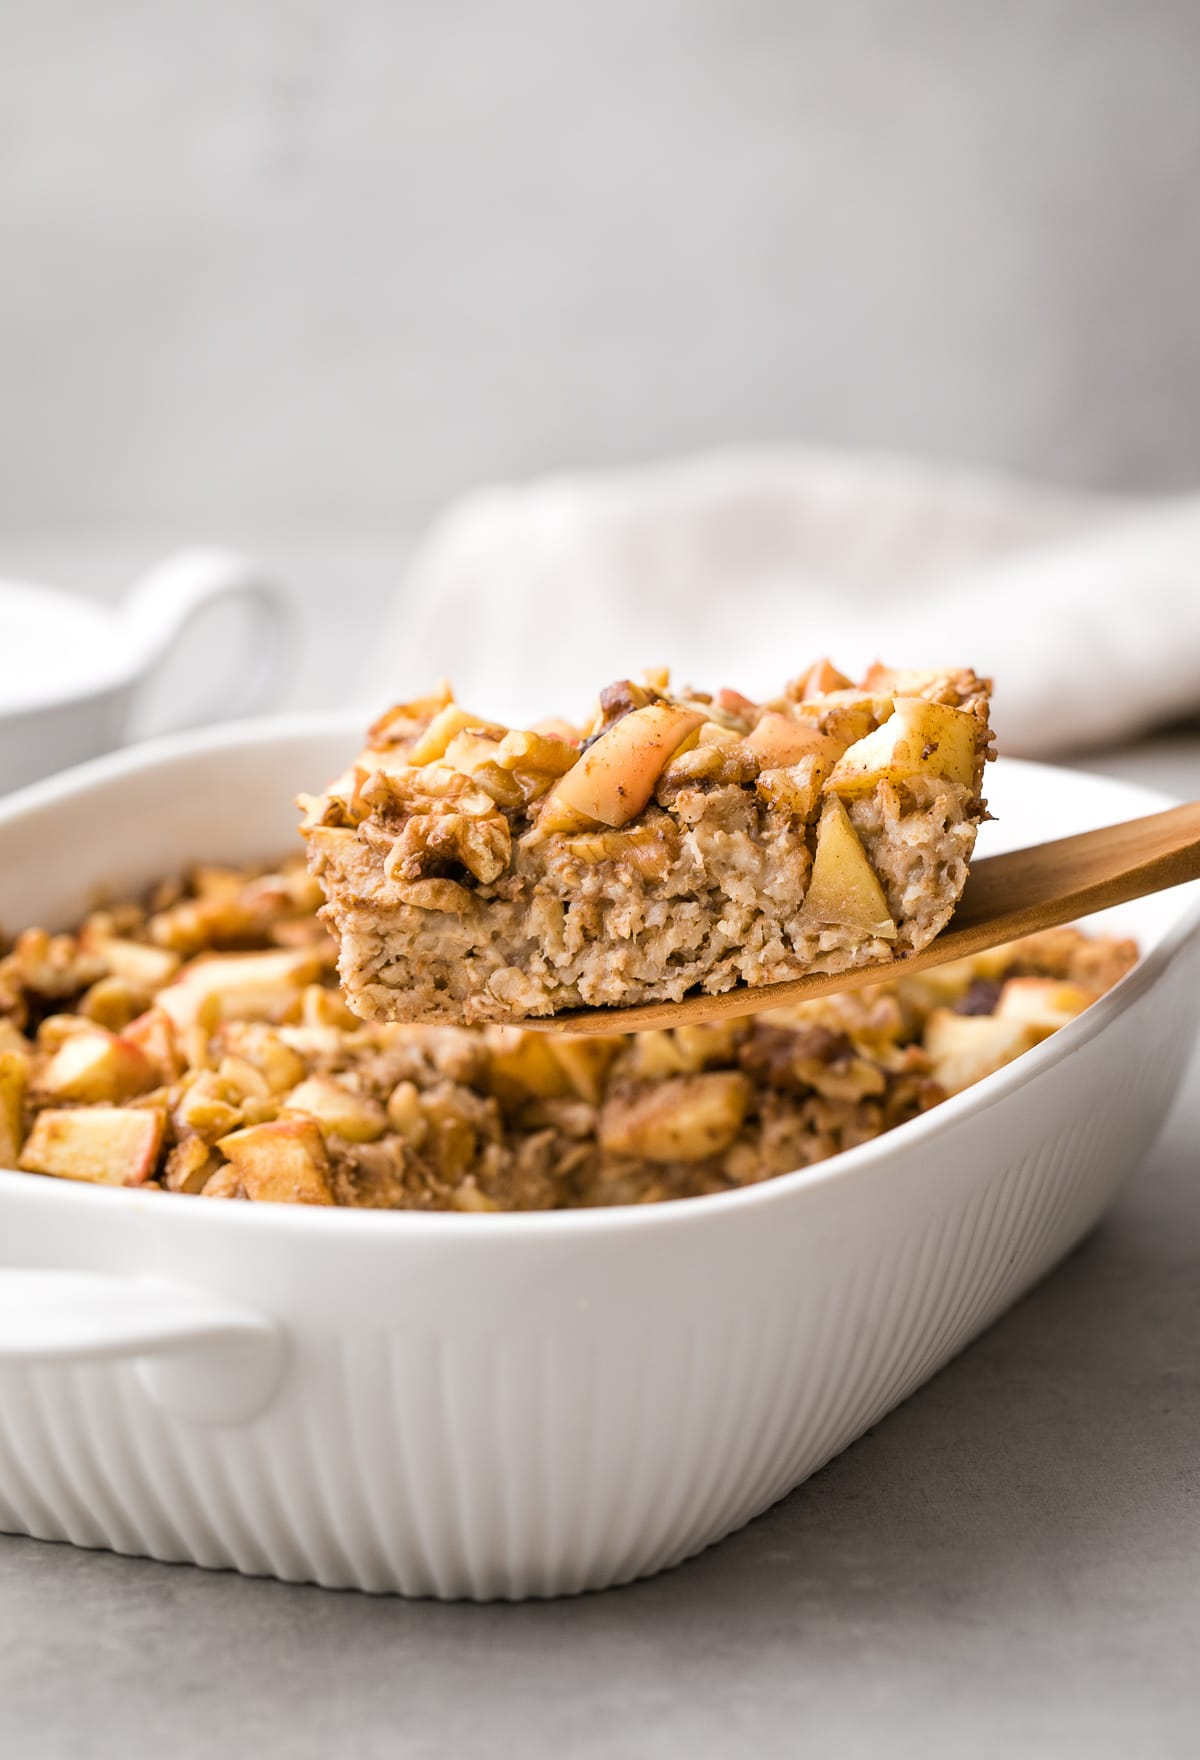 head on view of slice of apple baked oatmeal on wooden spatula.